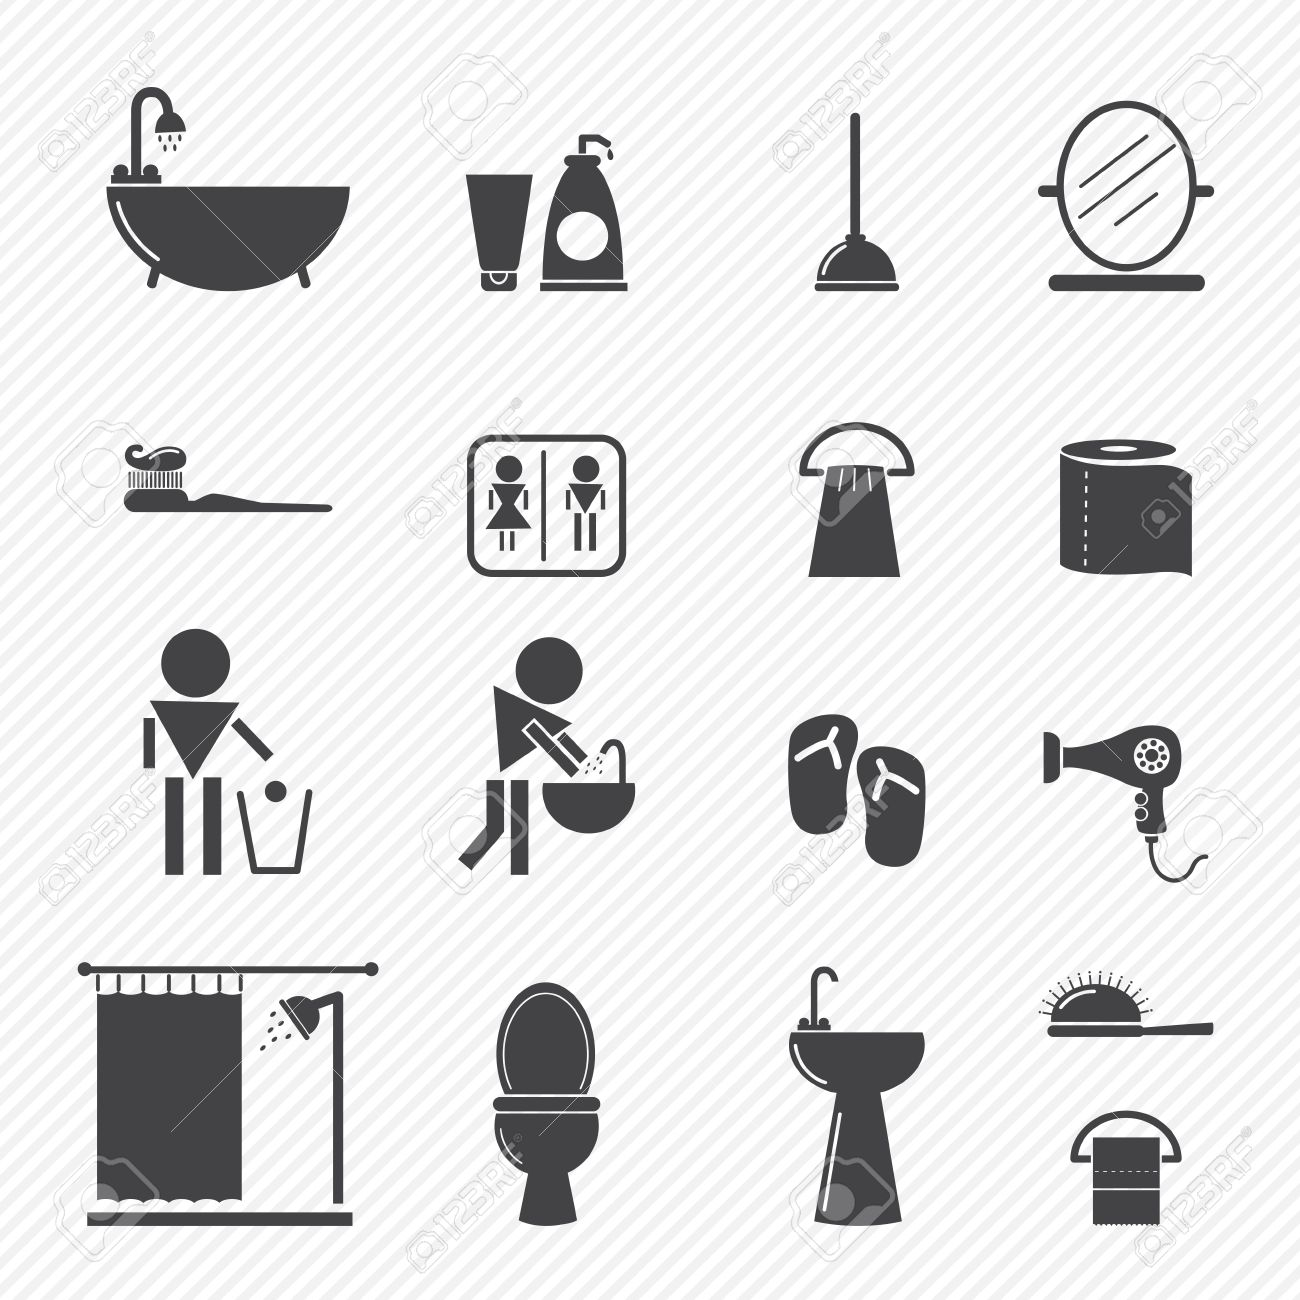 Bathroom icons isolated on white background Stock Vector - 22713233